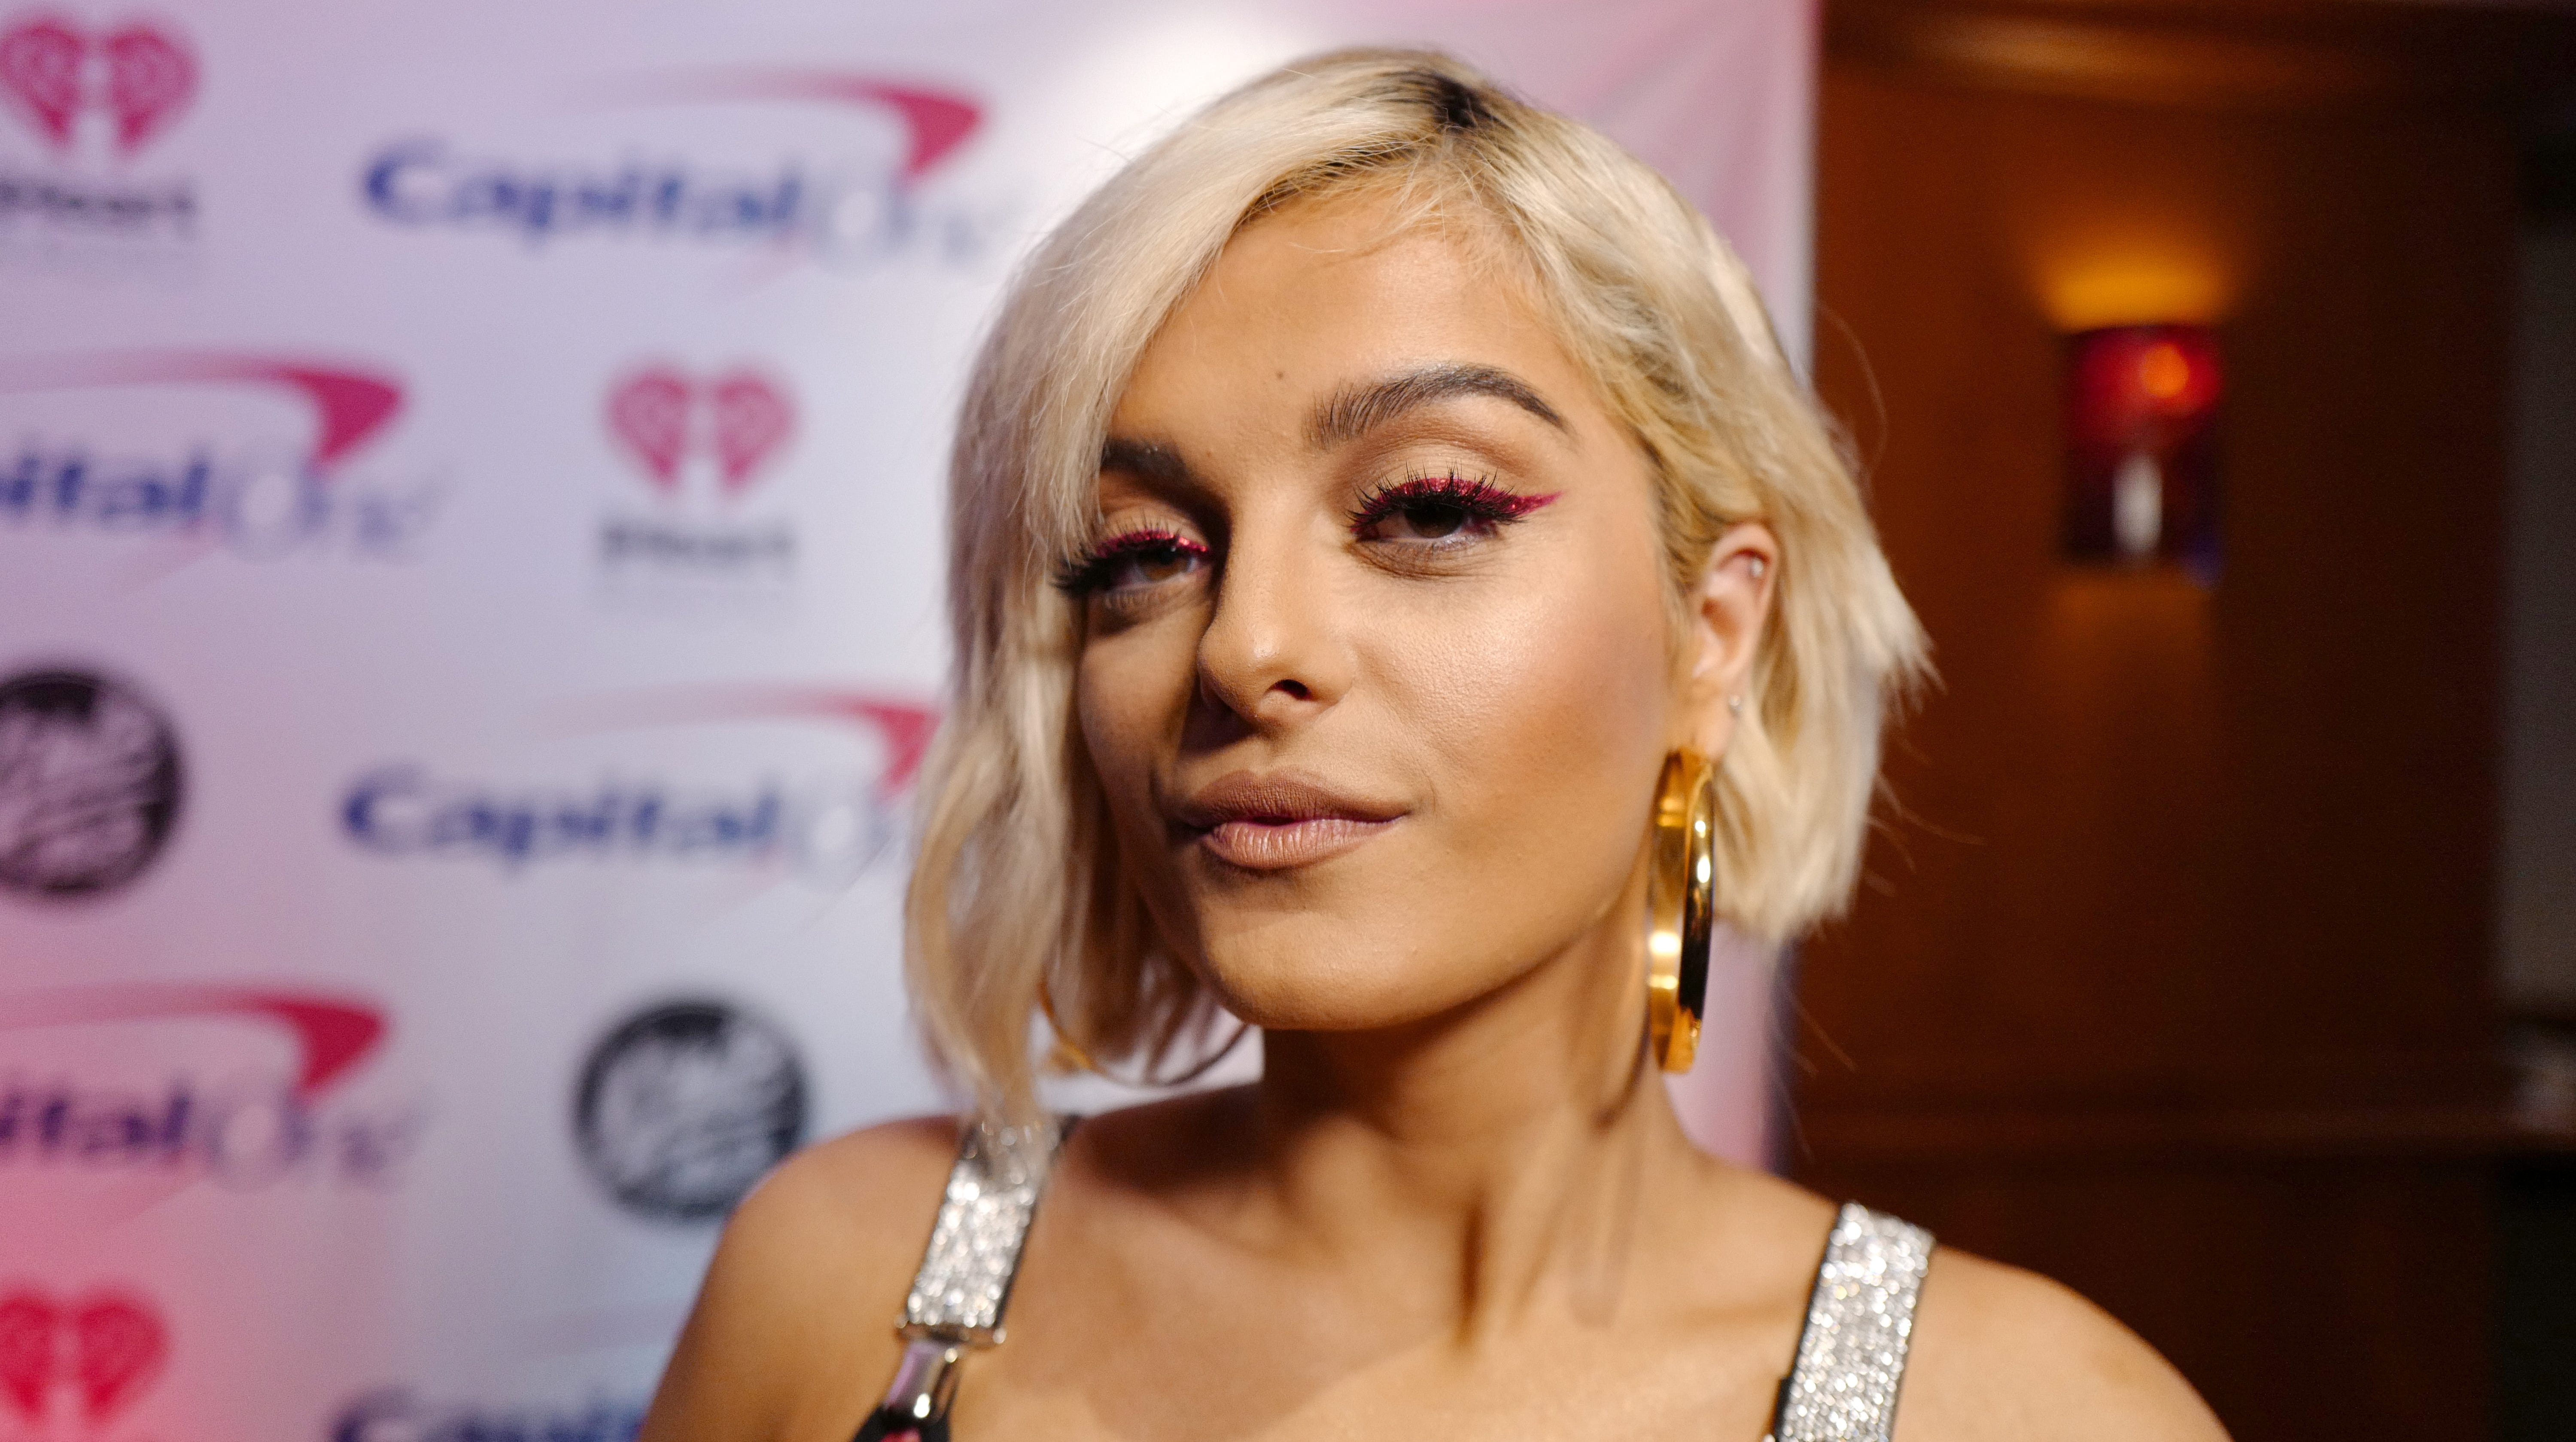 Bebe Rexha says designers won't dress her for the Grammys 'because I'm too big'